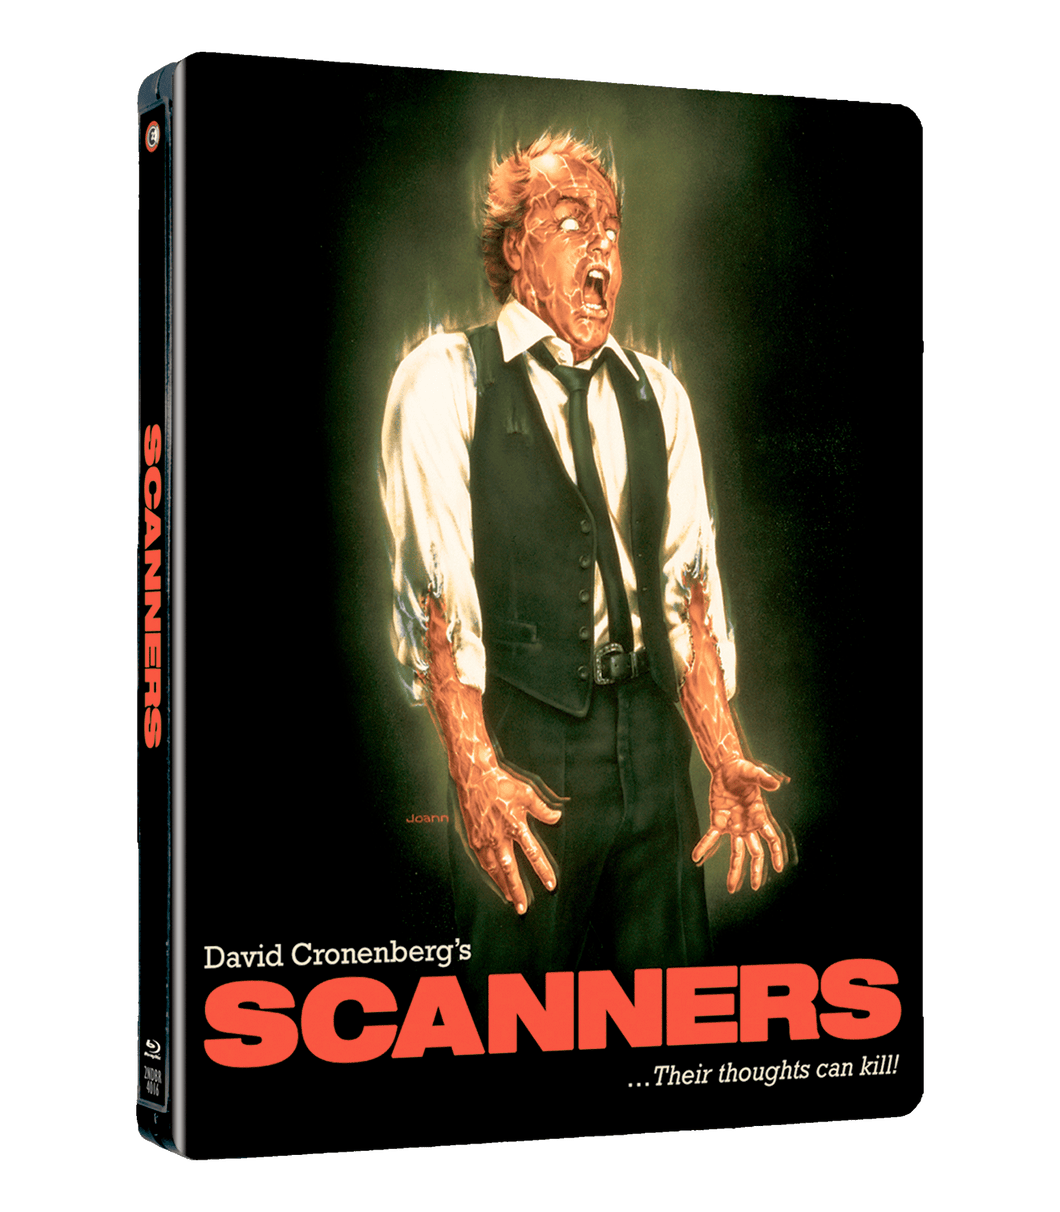 Scanners Steelbook - OUT OF PRINT